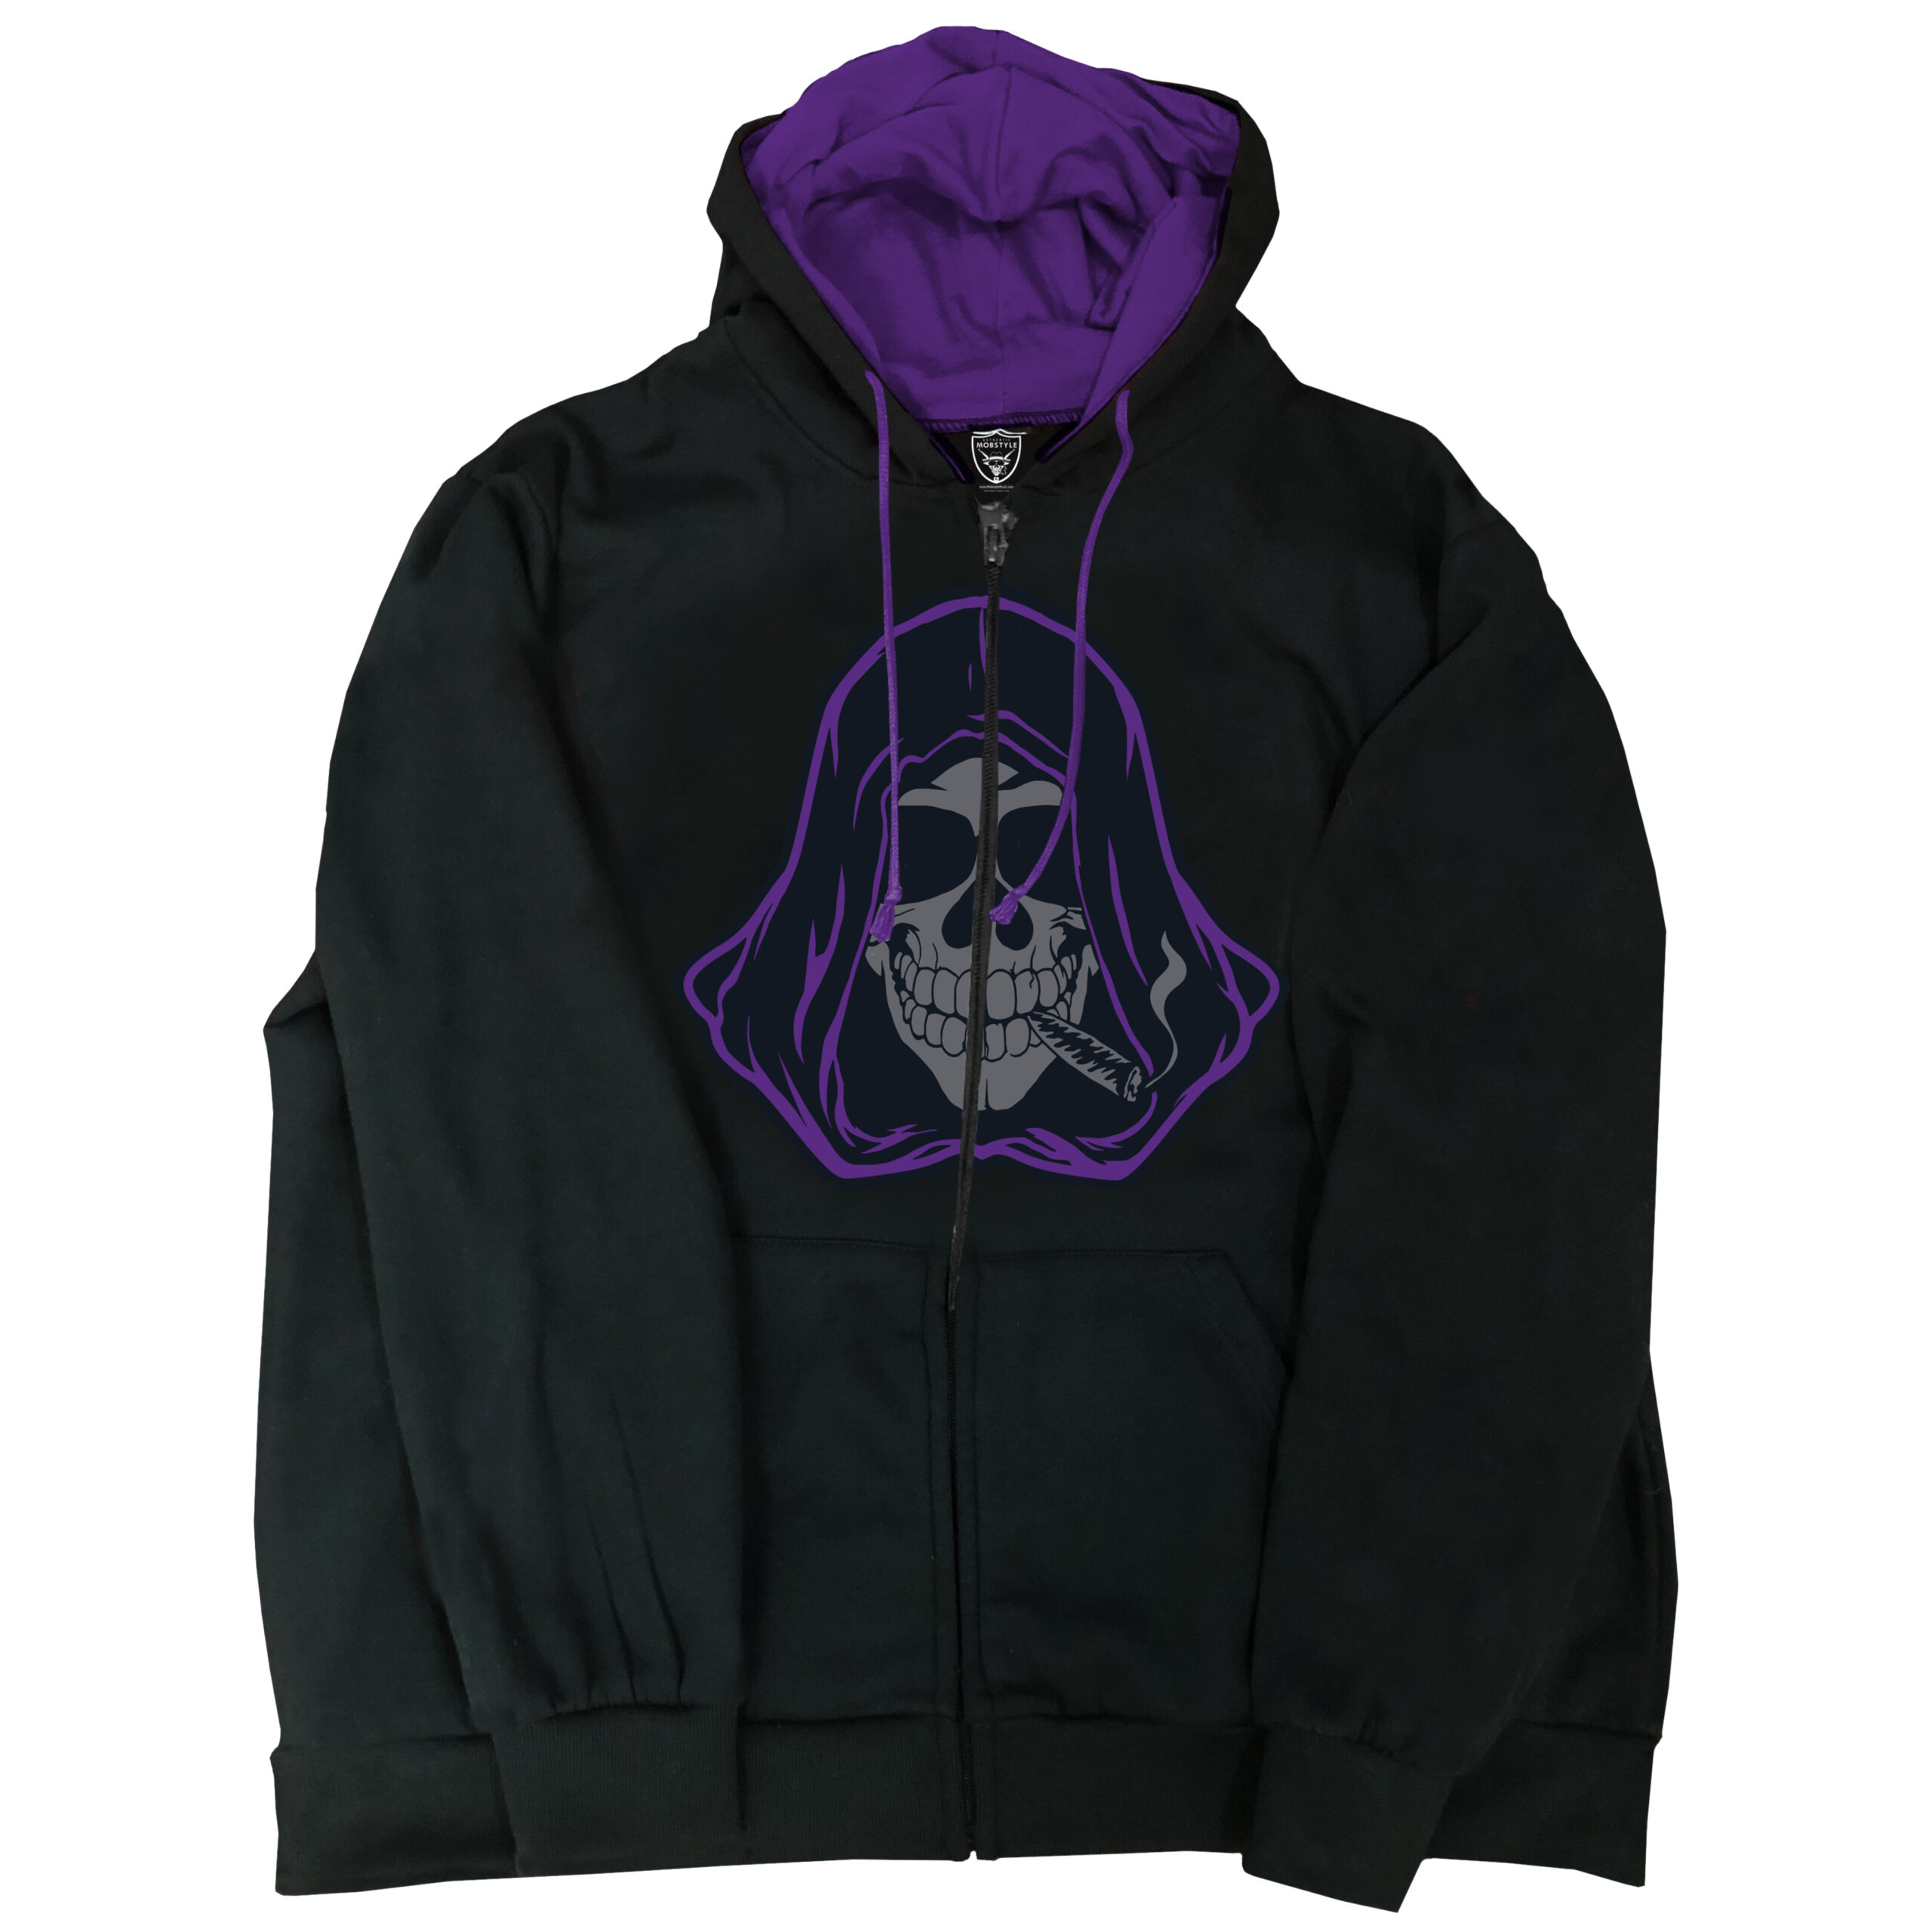 Cloaking Joe Embroidered Zip Up Hoodie